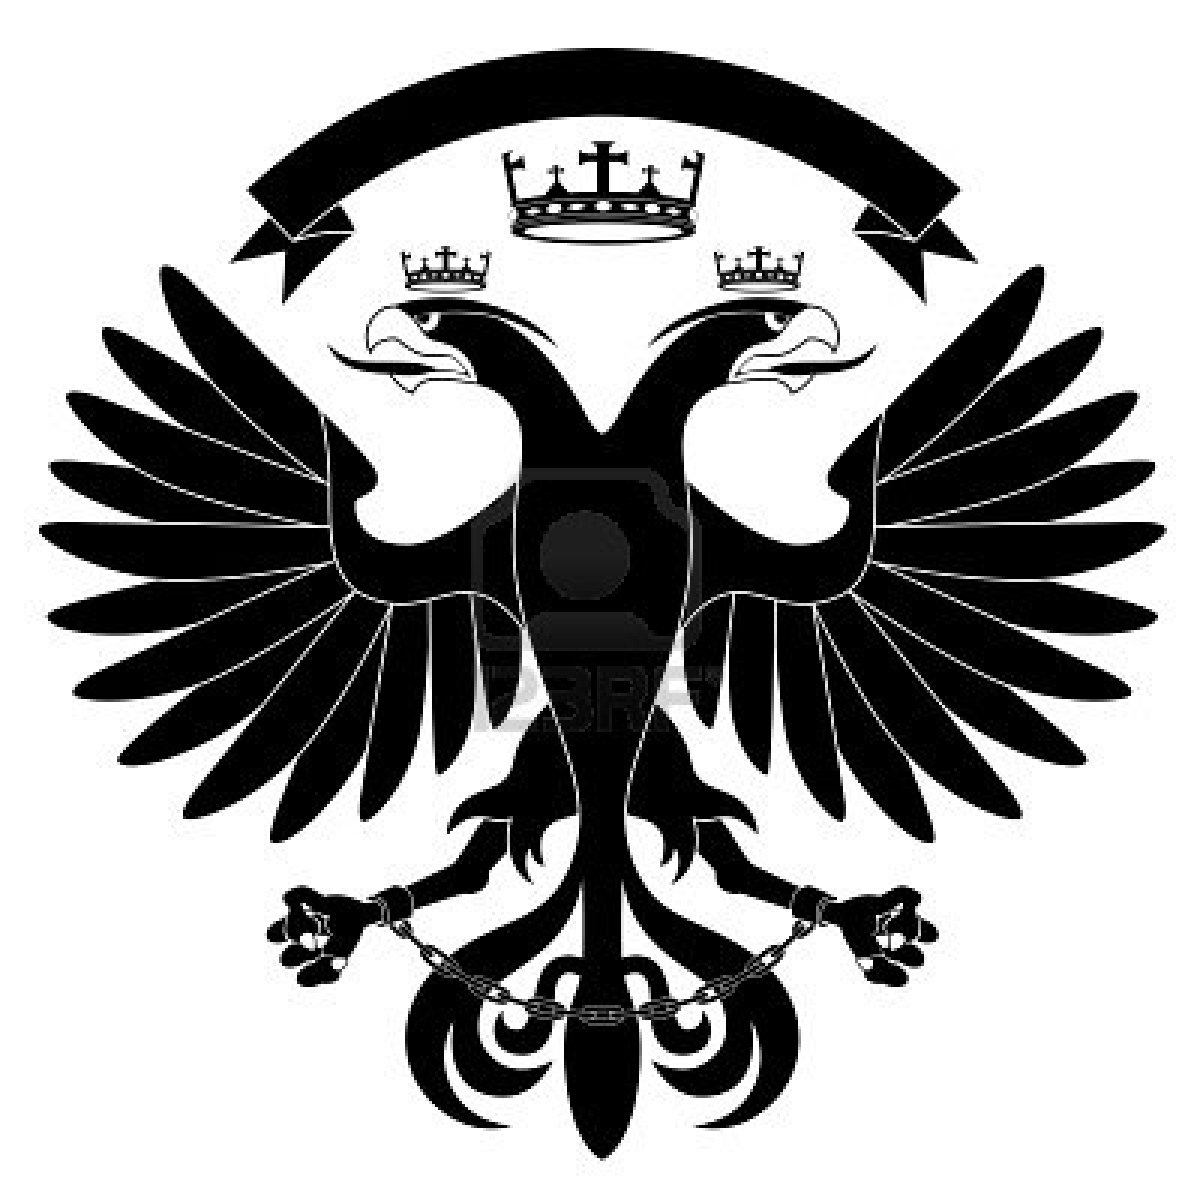 Kvrx vanquish guest review the enemy space russians have a symbol for their order the order of the russian star a masonic symbol that is a variation of this but with a five biocorpaavc Images